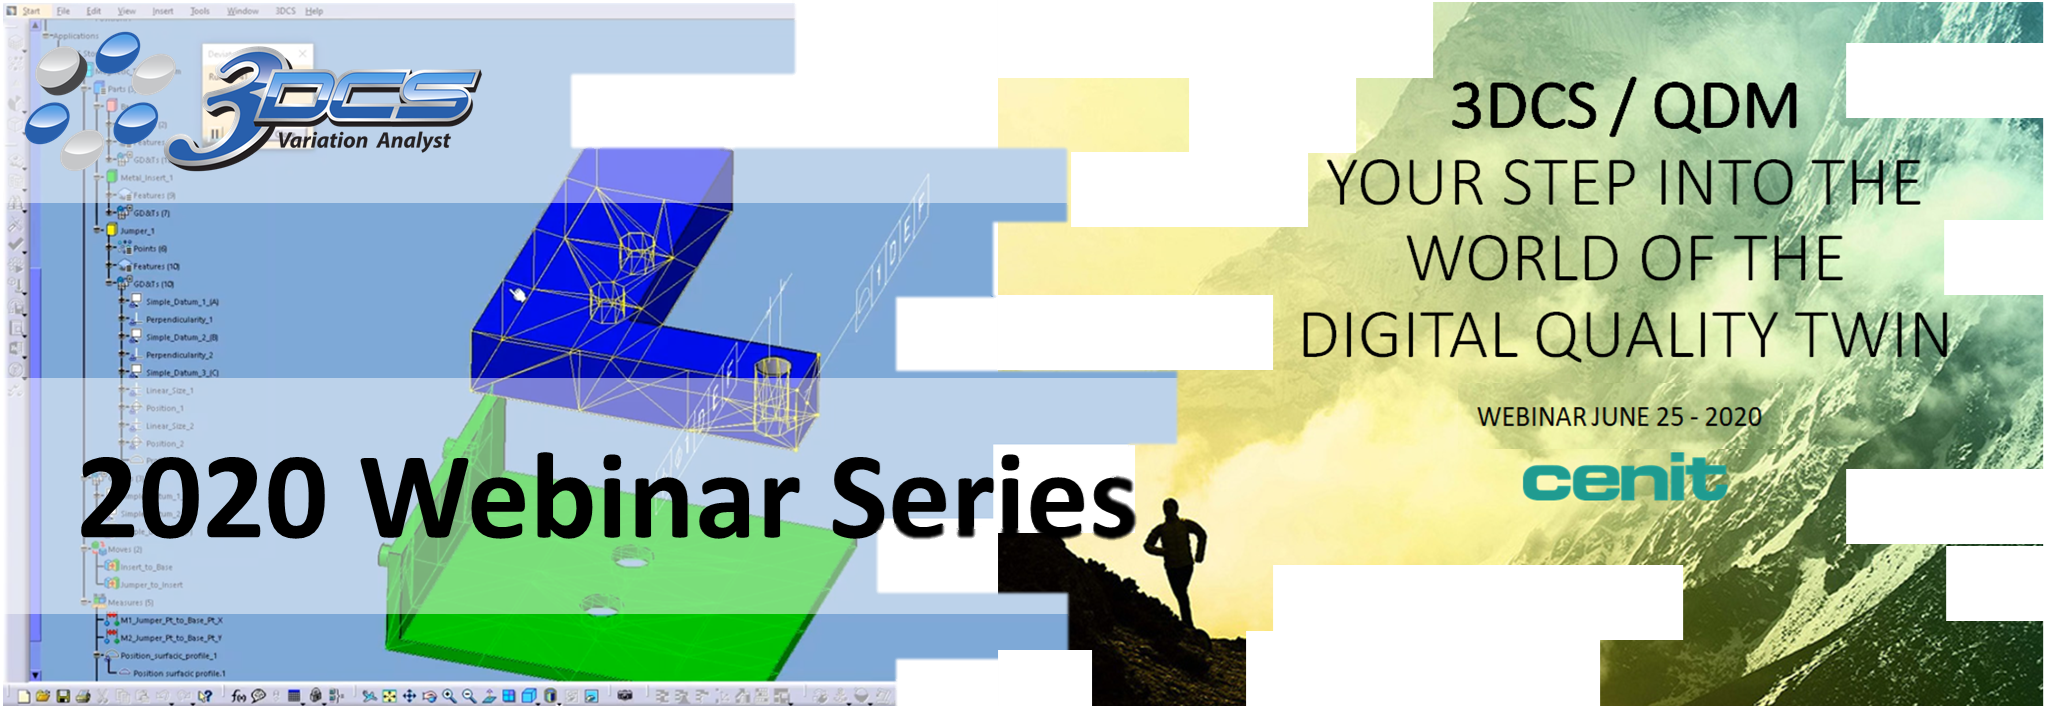 webinar-cenit-dimensional-management-june-25